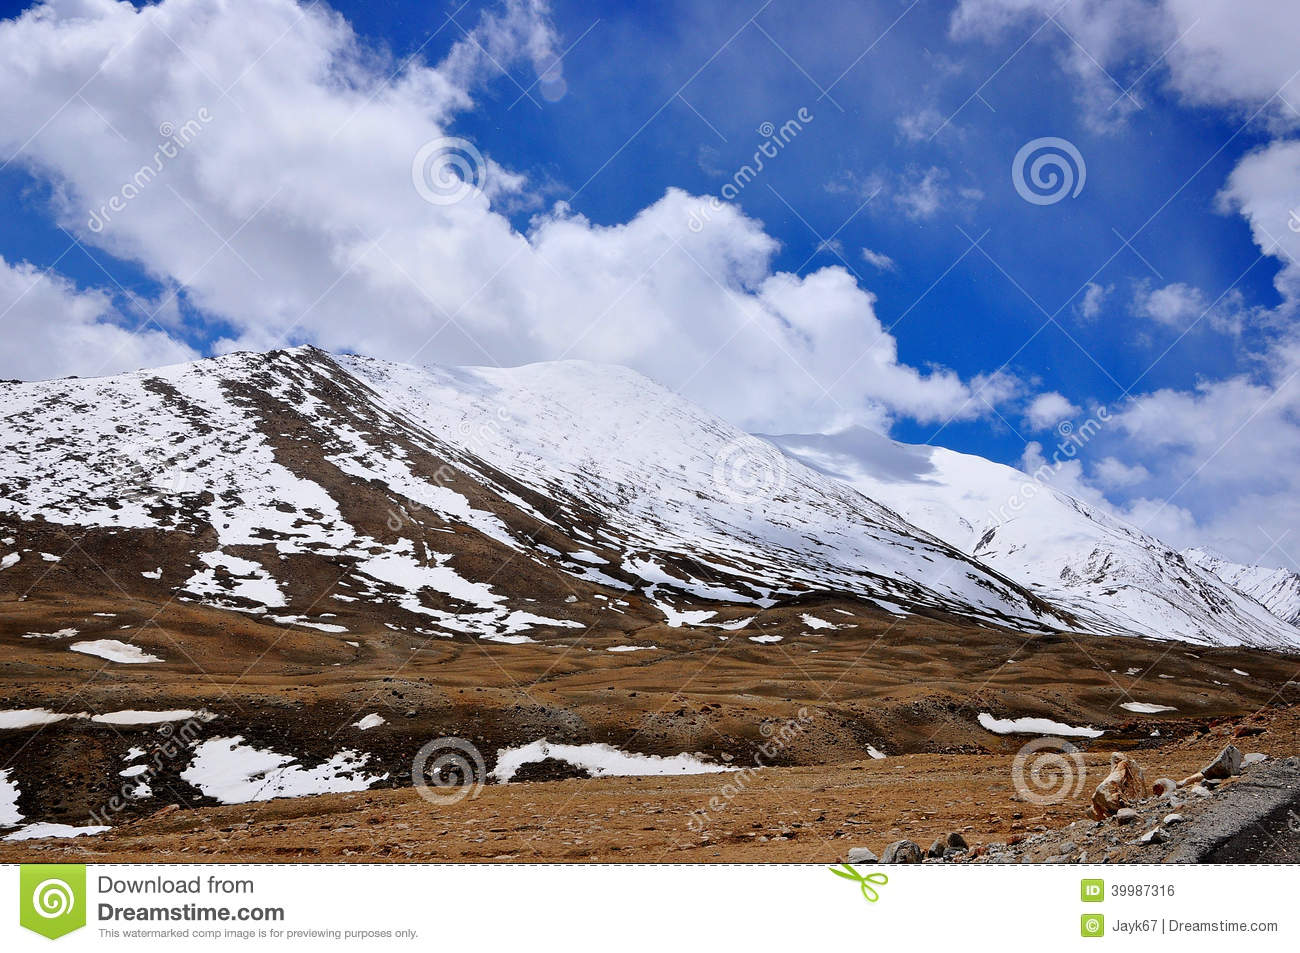 Snowy Mountain Landscape Stock Photo - Image: 39987316